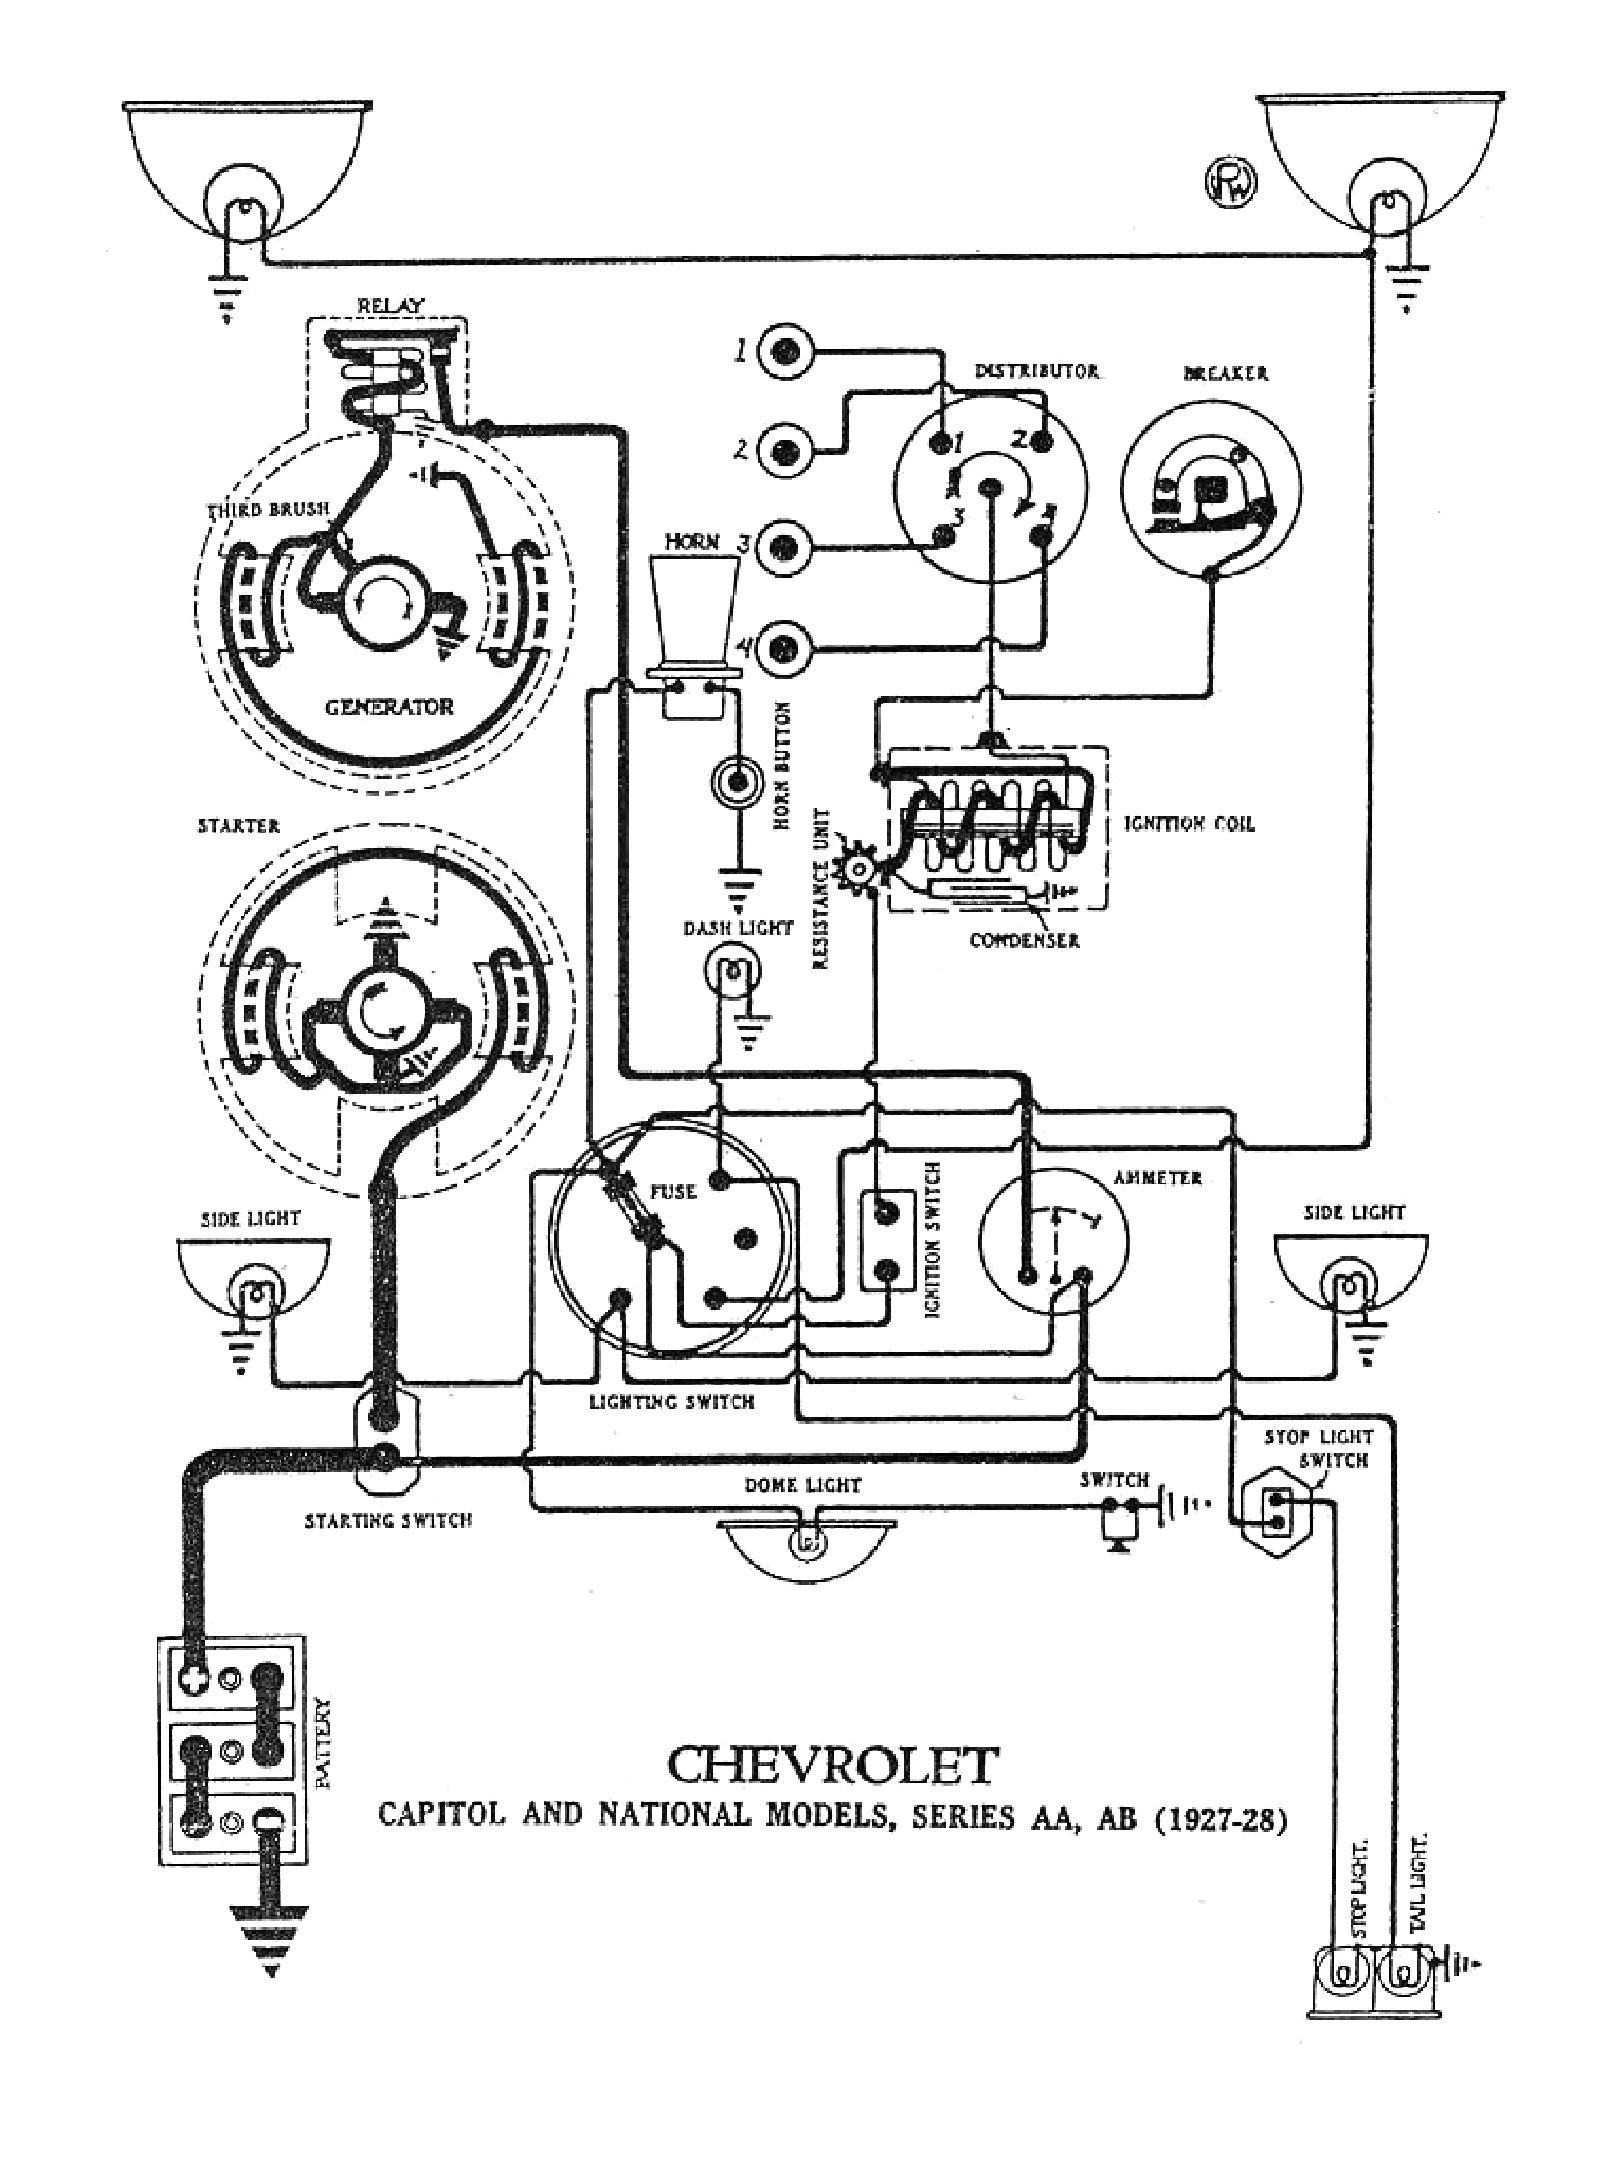 350 Engine Firing Order Diagram